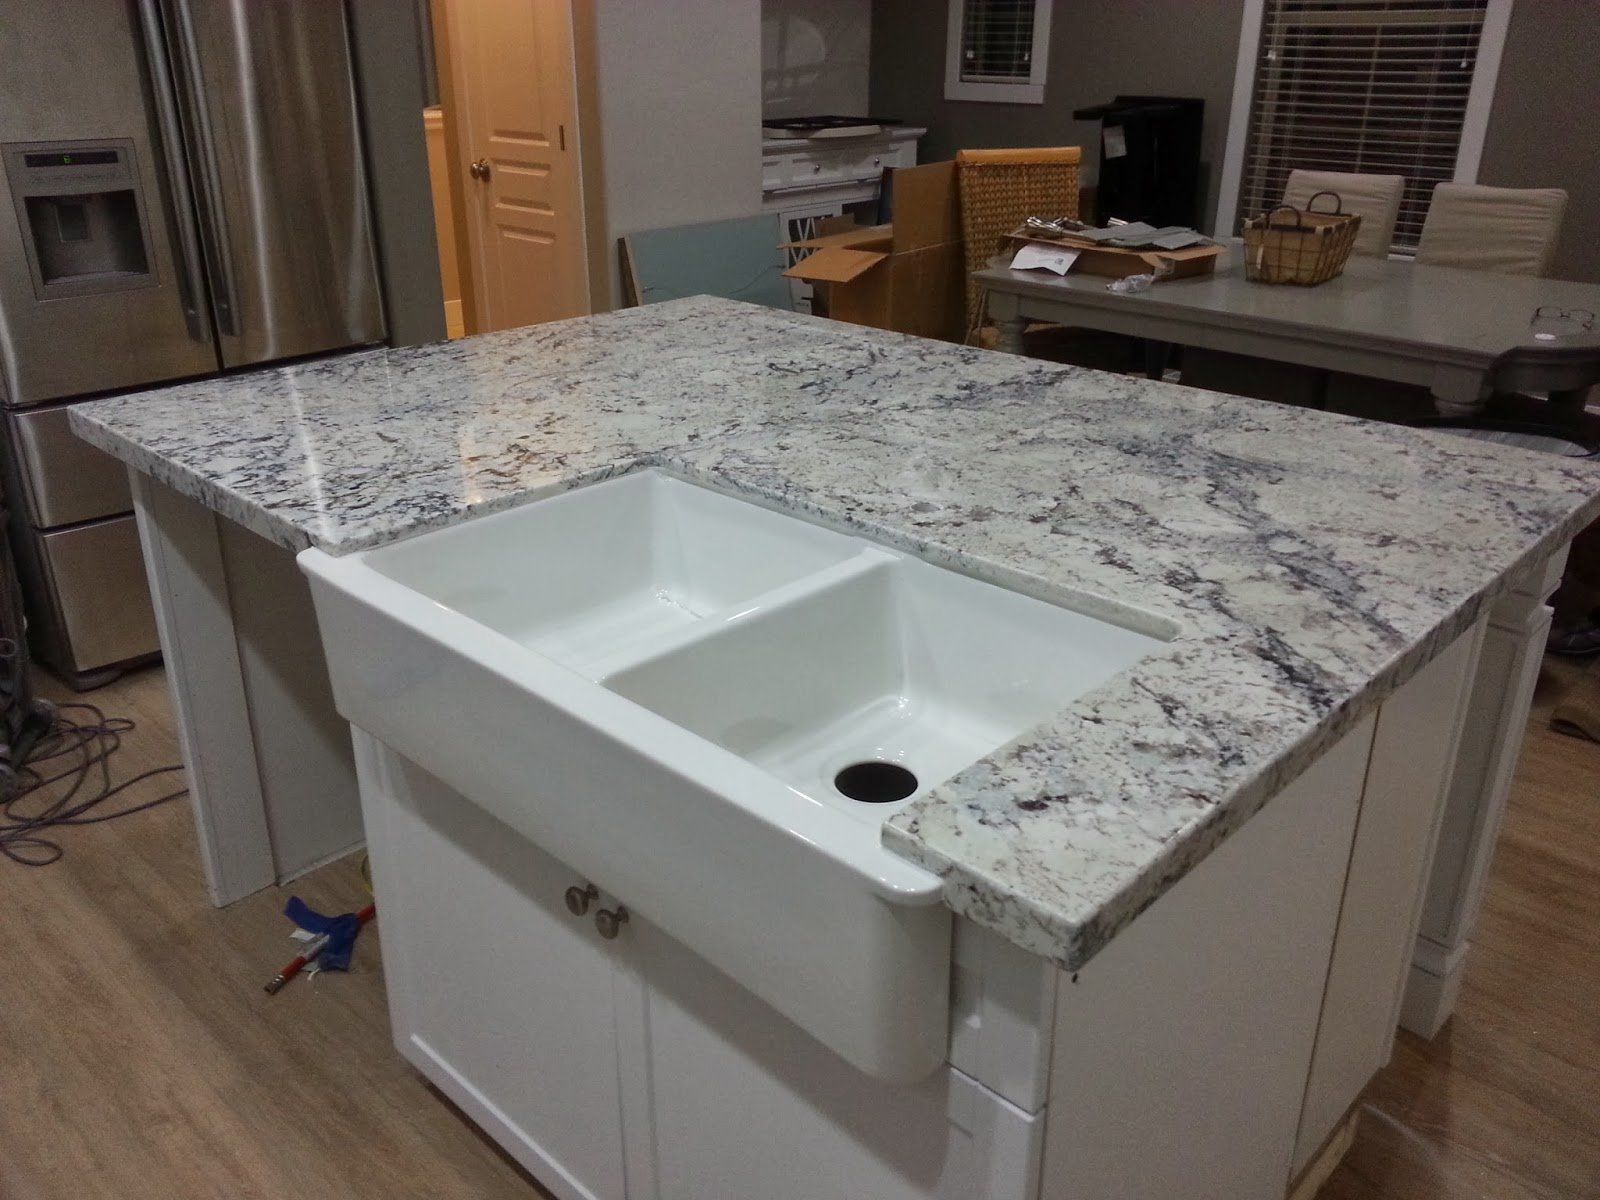 E granite sinks pros cons - Granite Countertops Pros And Cons Adorable Grey With Pencil Edges And Countertop Tiles Labels S Interior White Double Sink Over Wooden Kitchen Island On